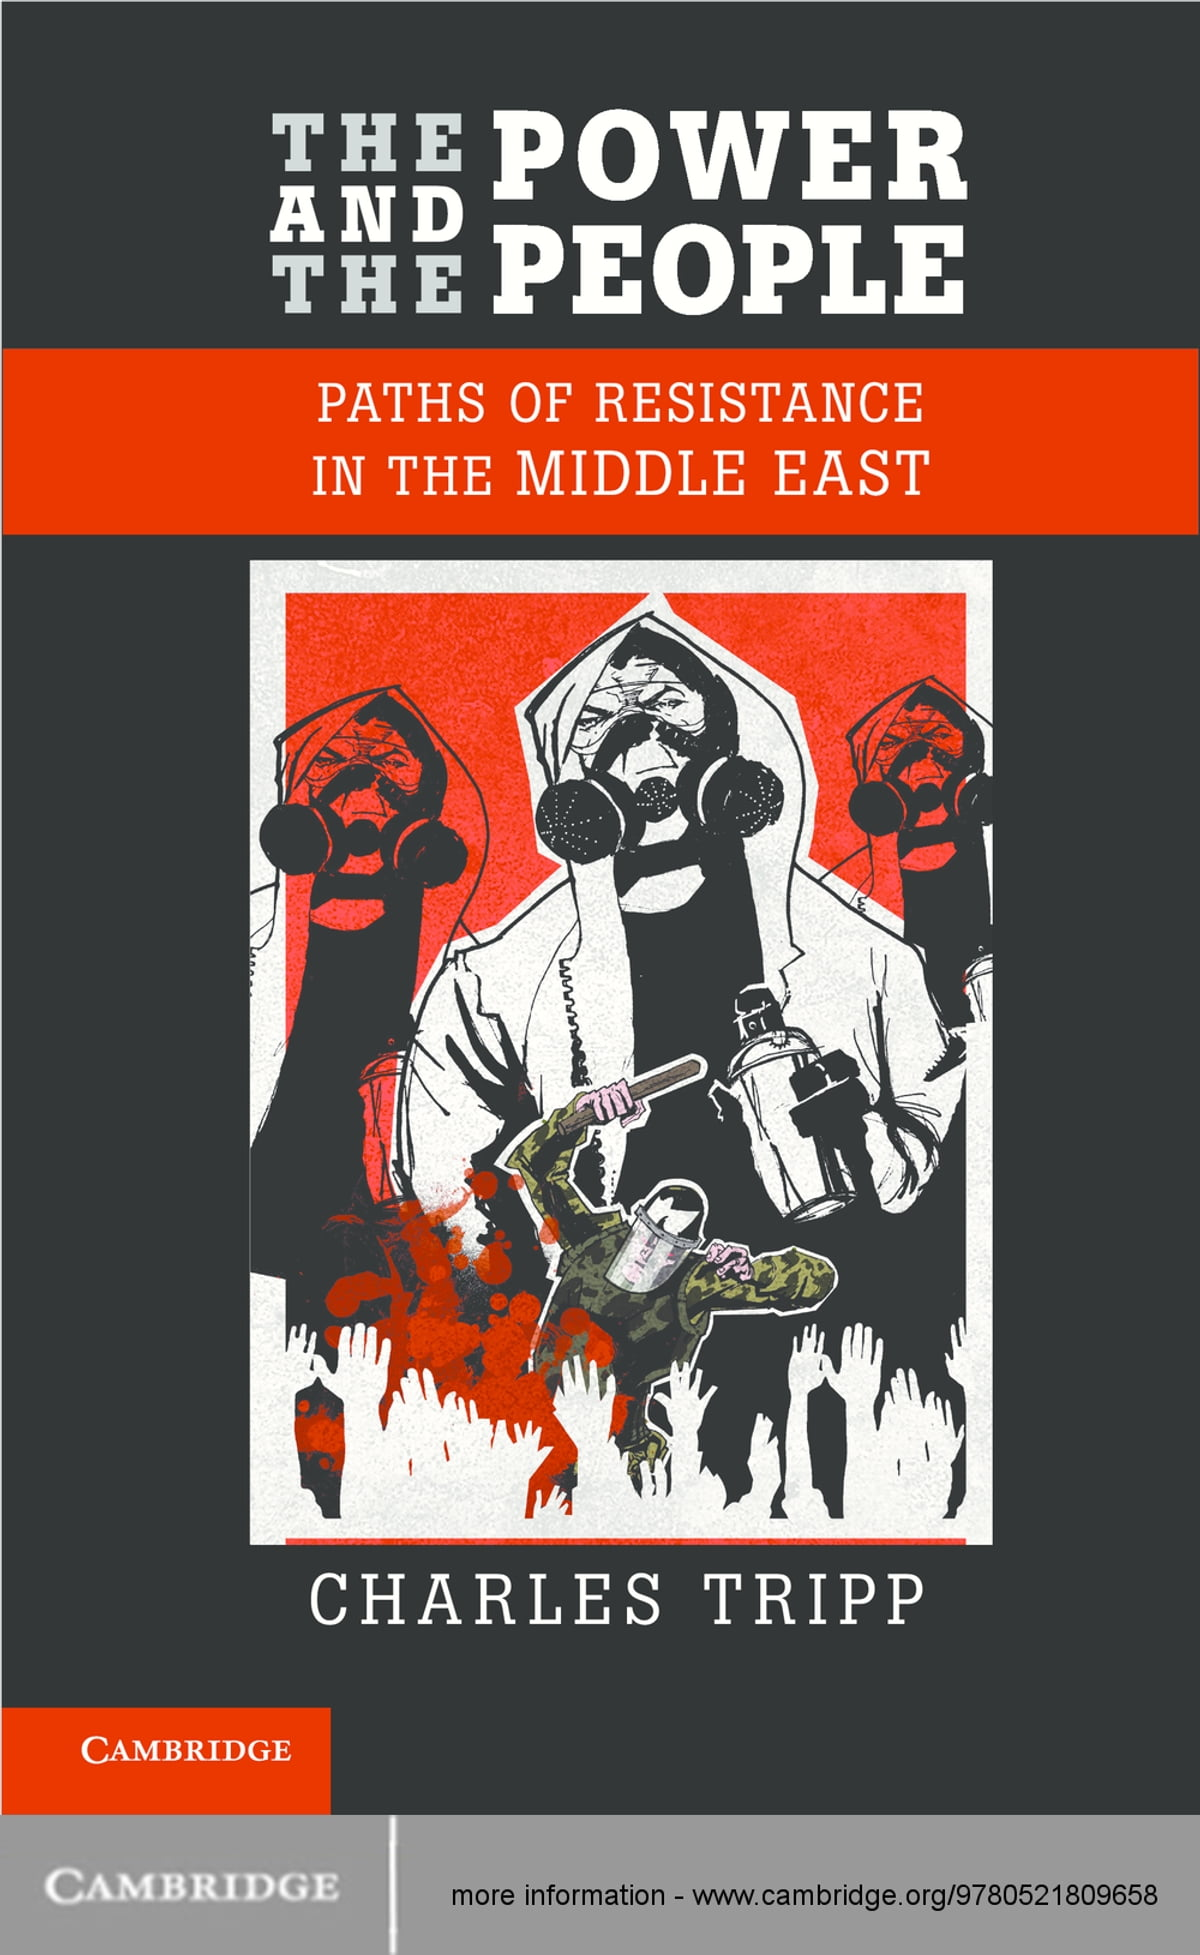 The Power and the People: Paths of Resistance in the Middle East